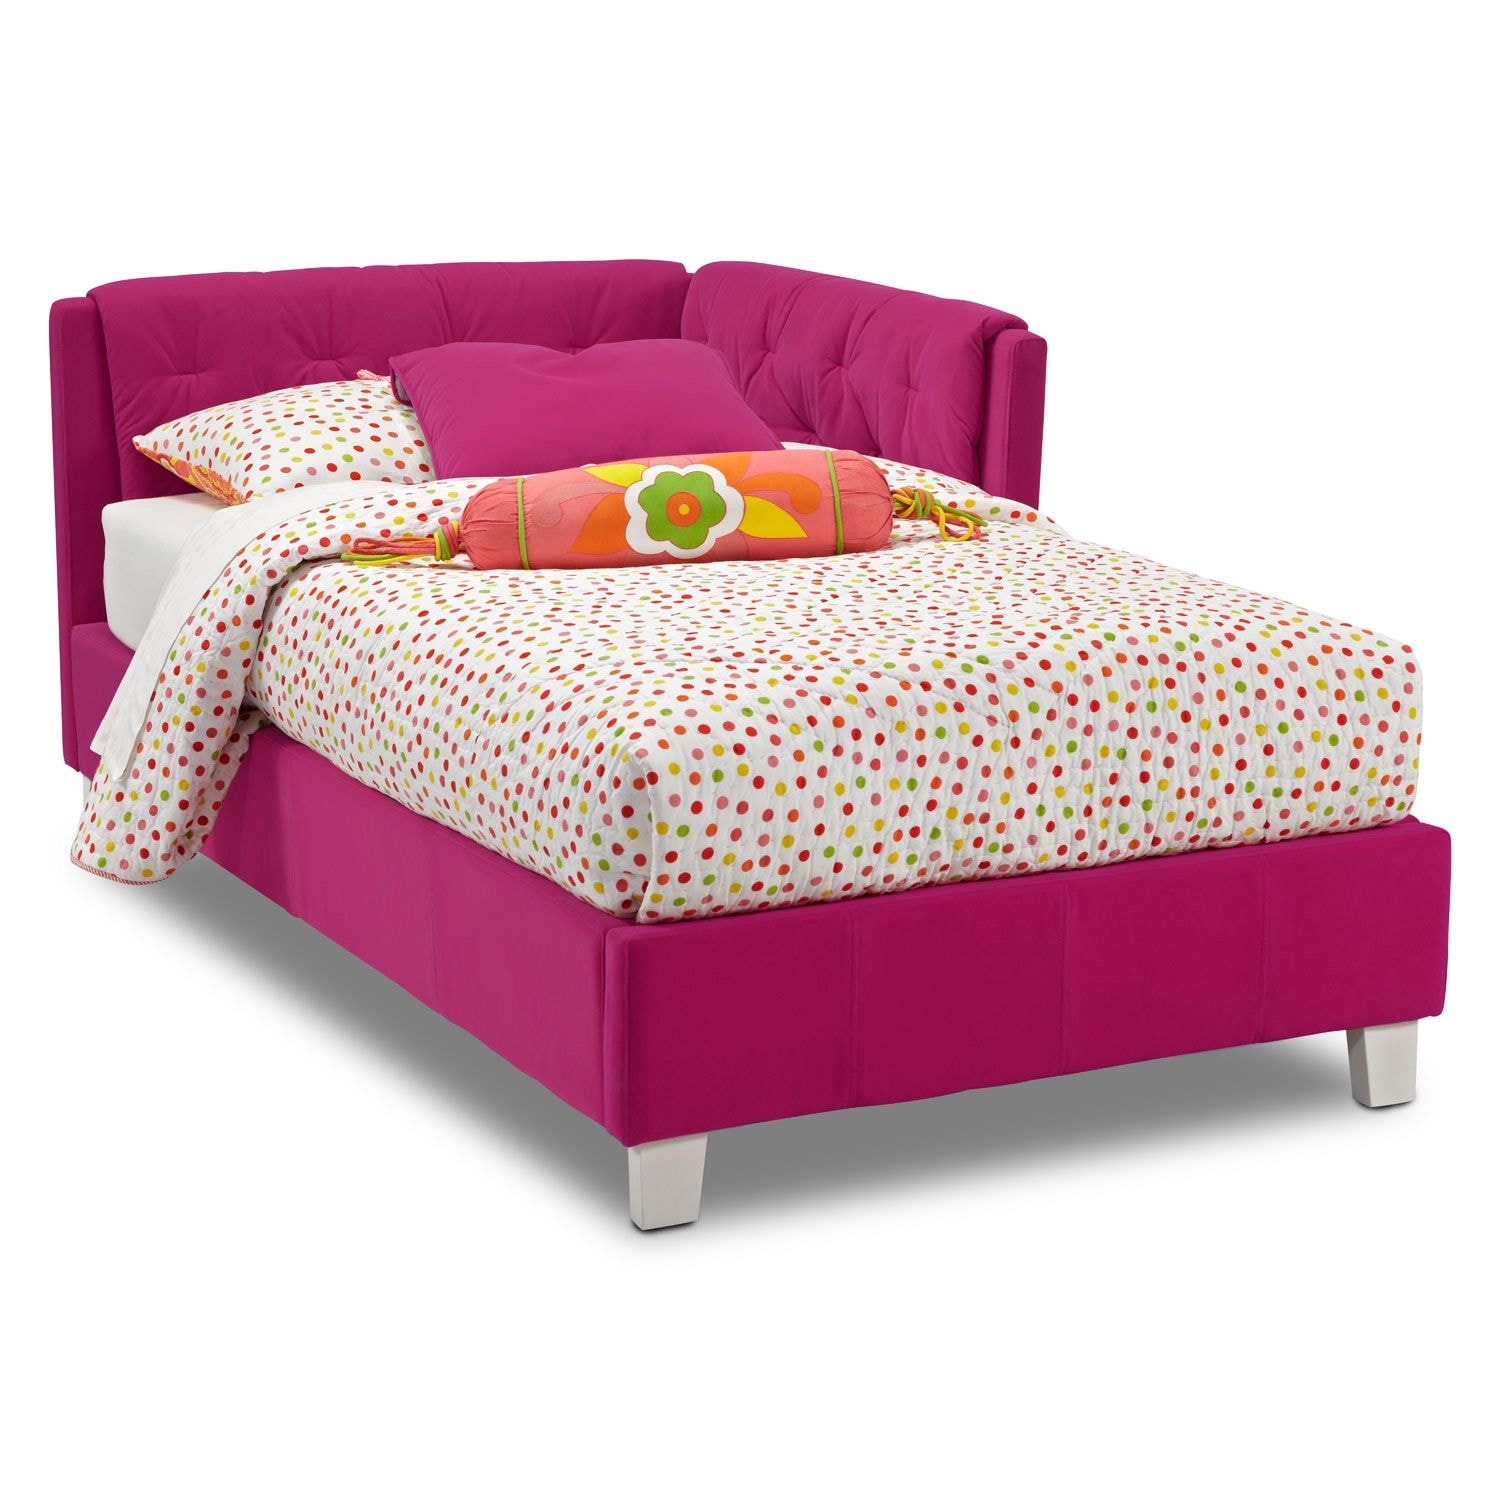 kids beds value city furniture and mattresses